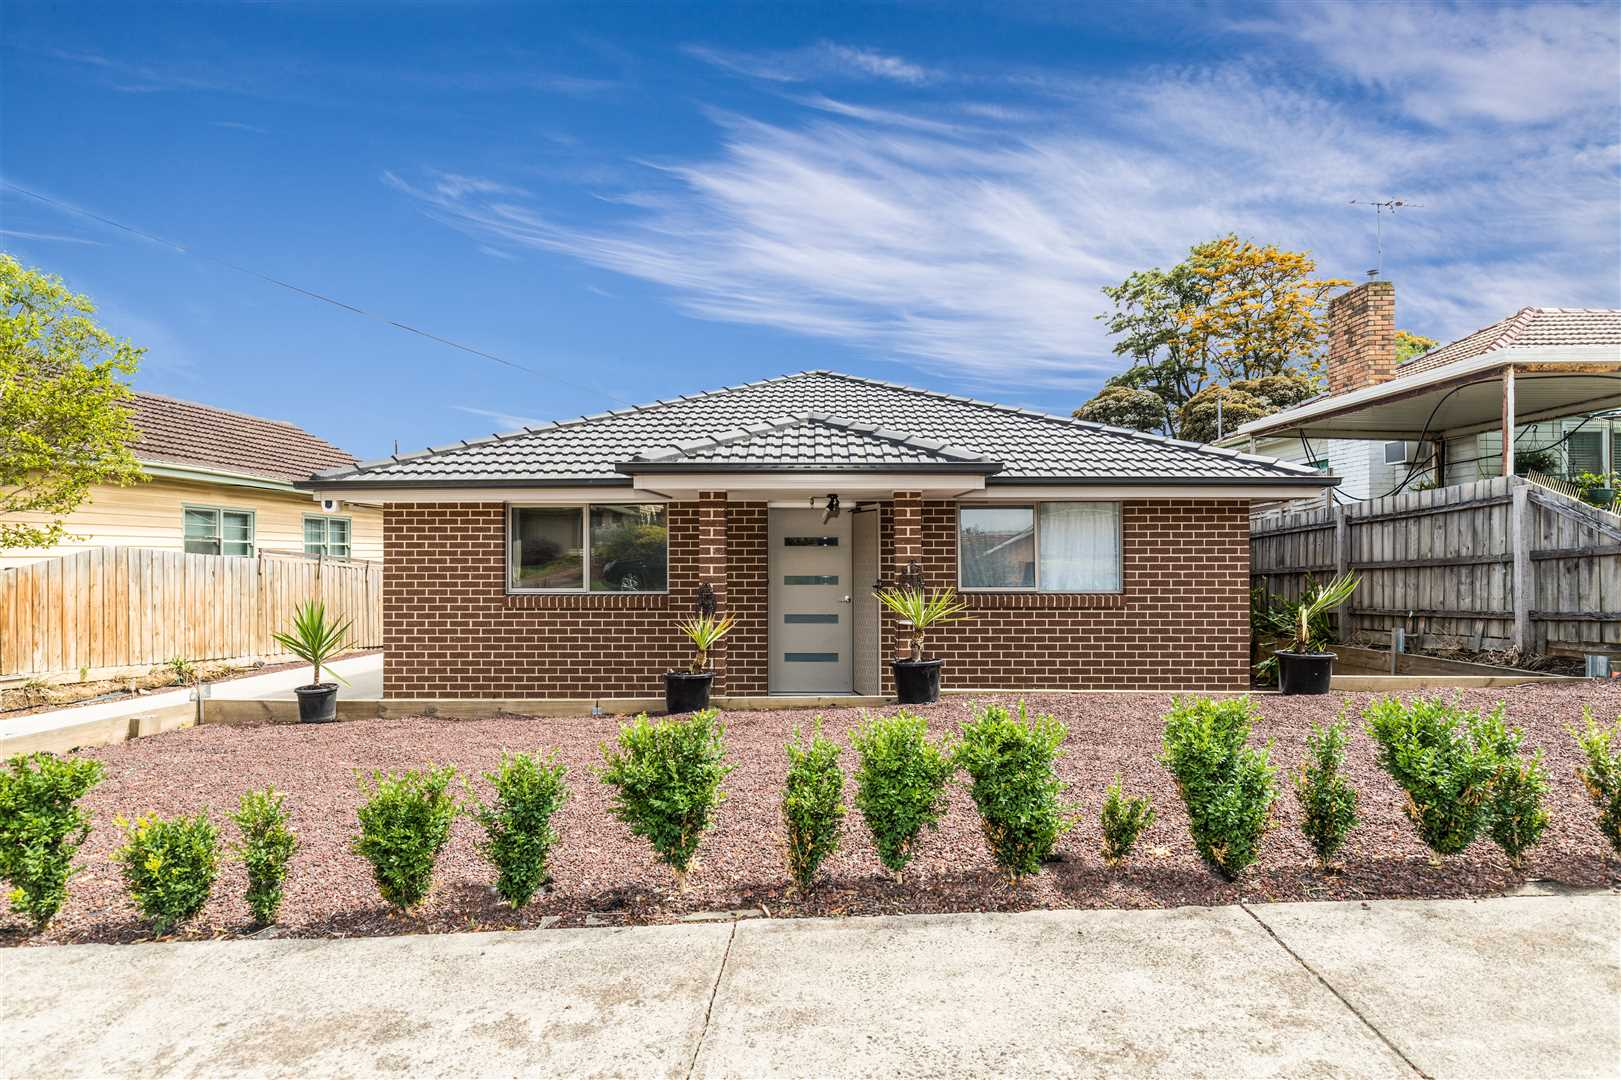 Occupancy permit ready High yield investment-5 Min to Deakin